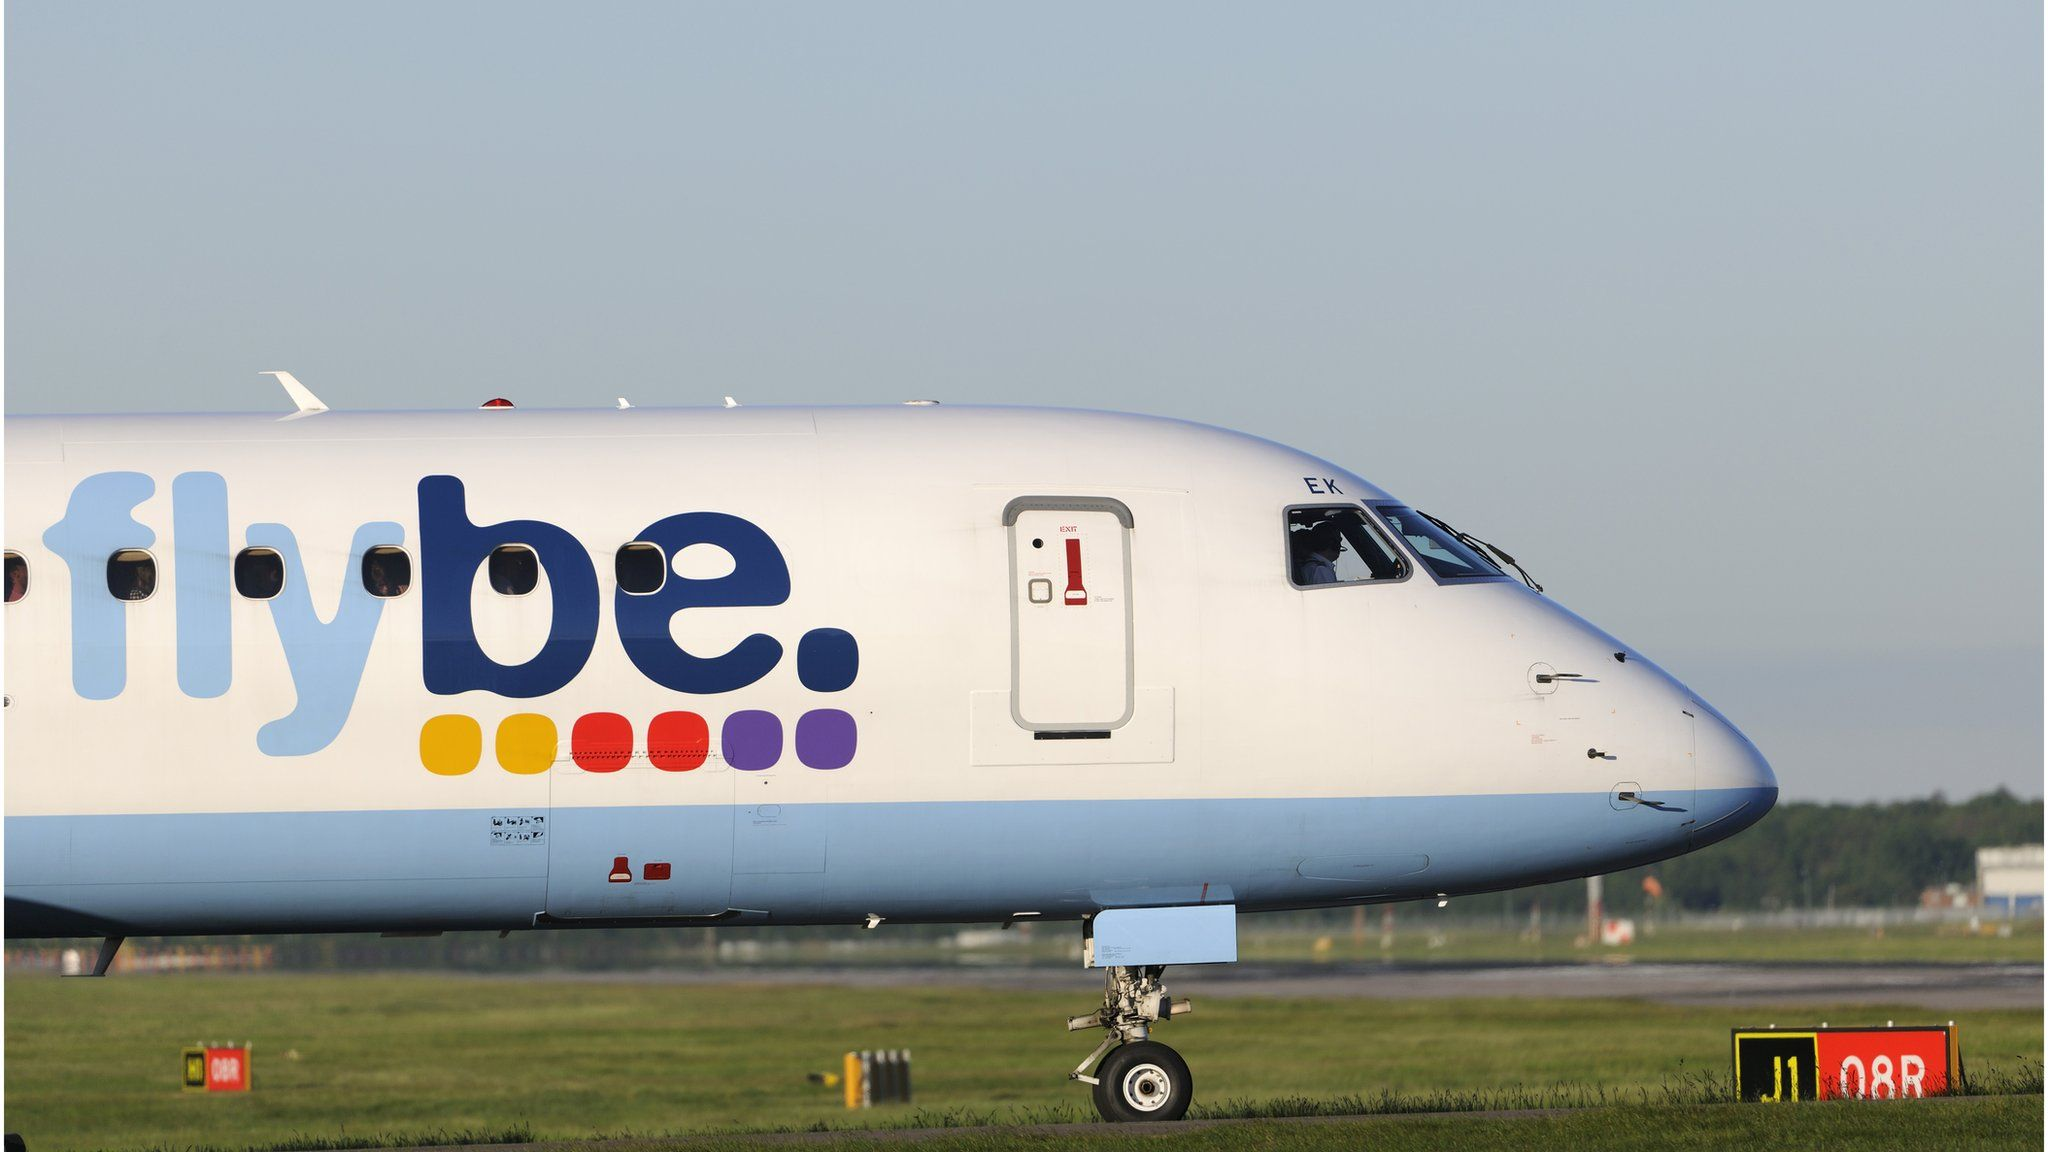 Collapsed Flybe Tells Passengers Not To Travel To Airports Bbc News Diana ross says she felt 'violated' after tsa inspectionthe legendary singer says an agent touched her between her legs during a routine. collapsed flybe tells passengers not to